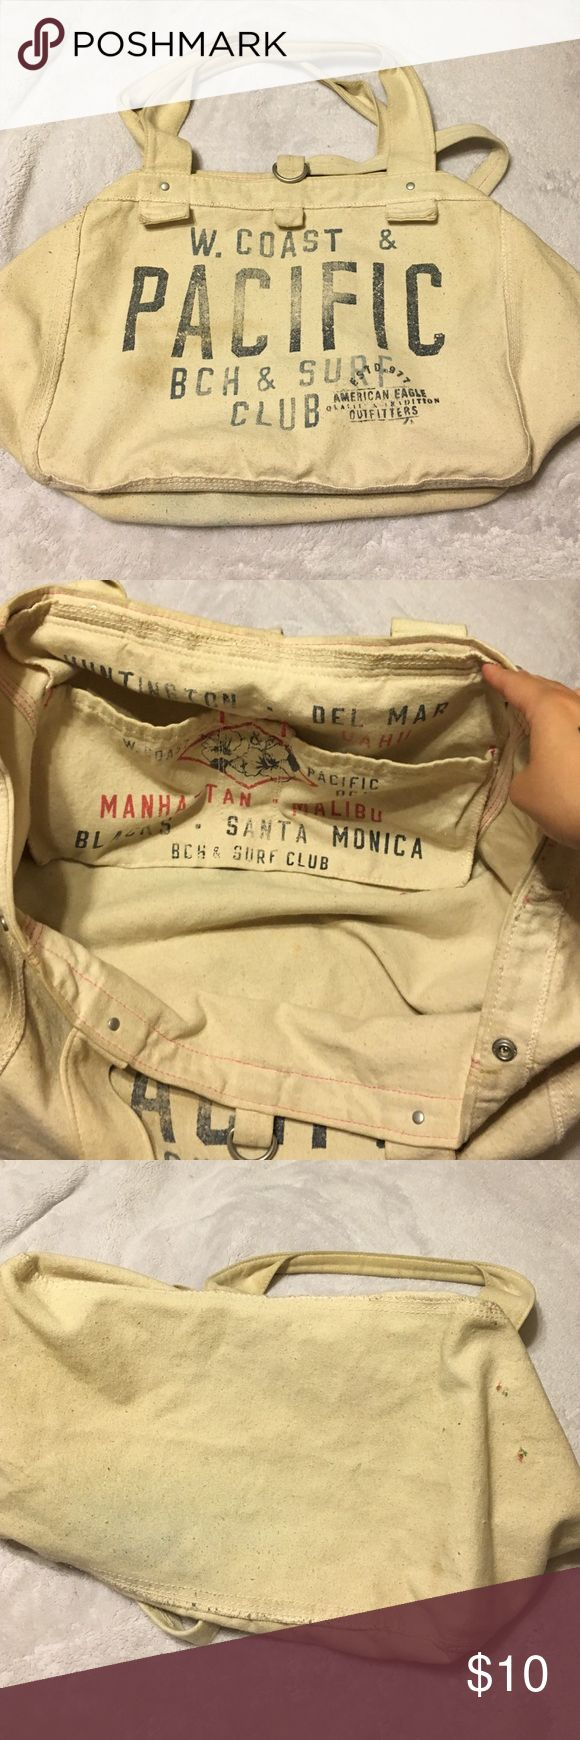 American Eagle Canvas Tote Bag Cream canvas bag with blue lettering. Unsnaps at top to make bigger. Two pain spots on bottom (3rd picture). But otherwise good condition. American Eagle Outfitters Bags Totes